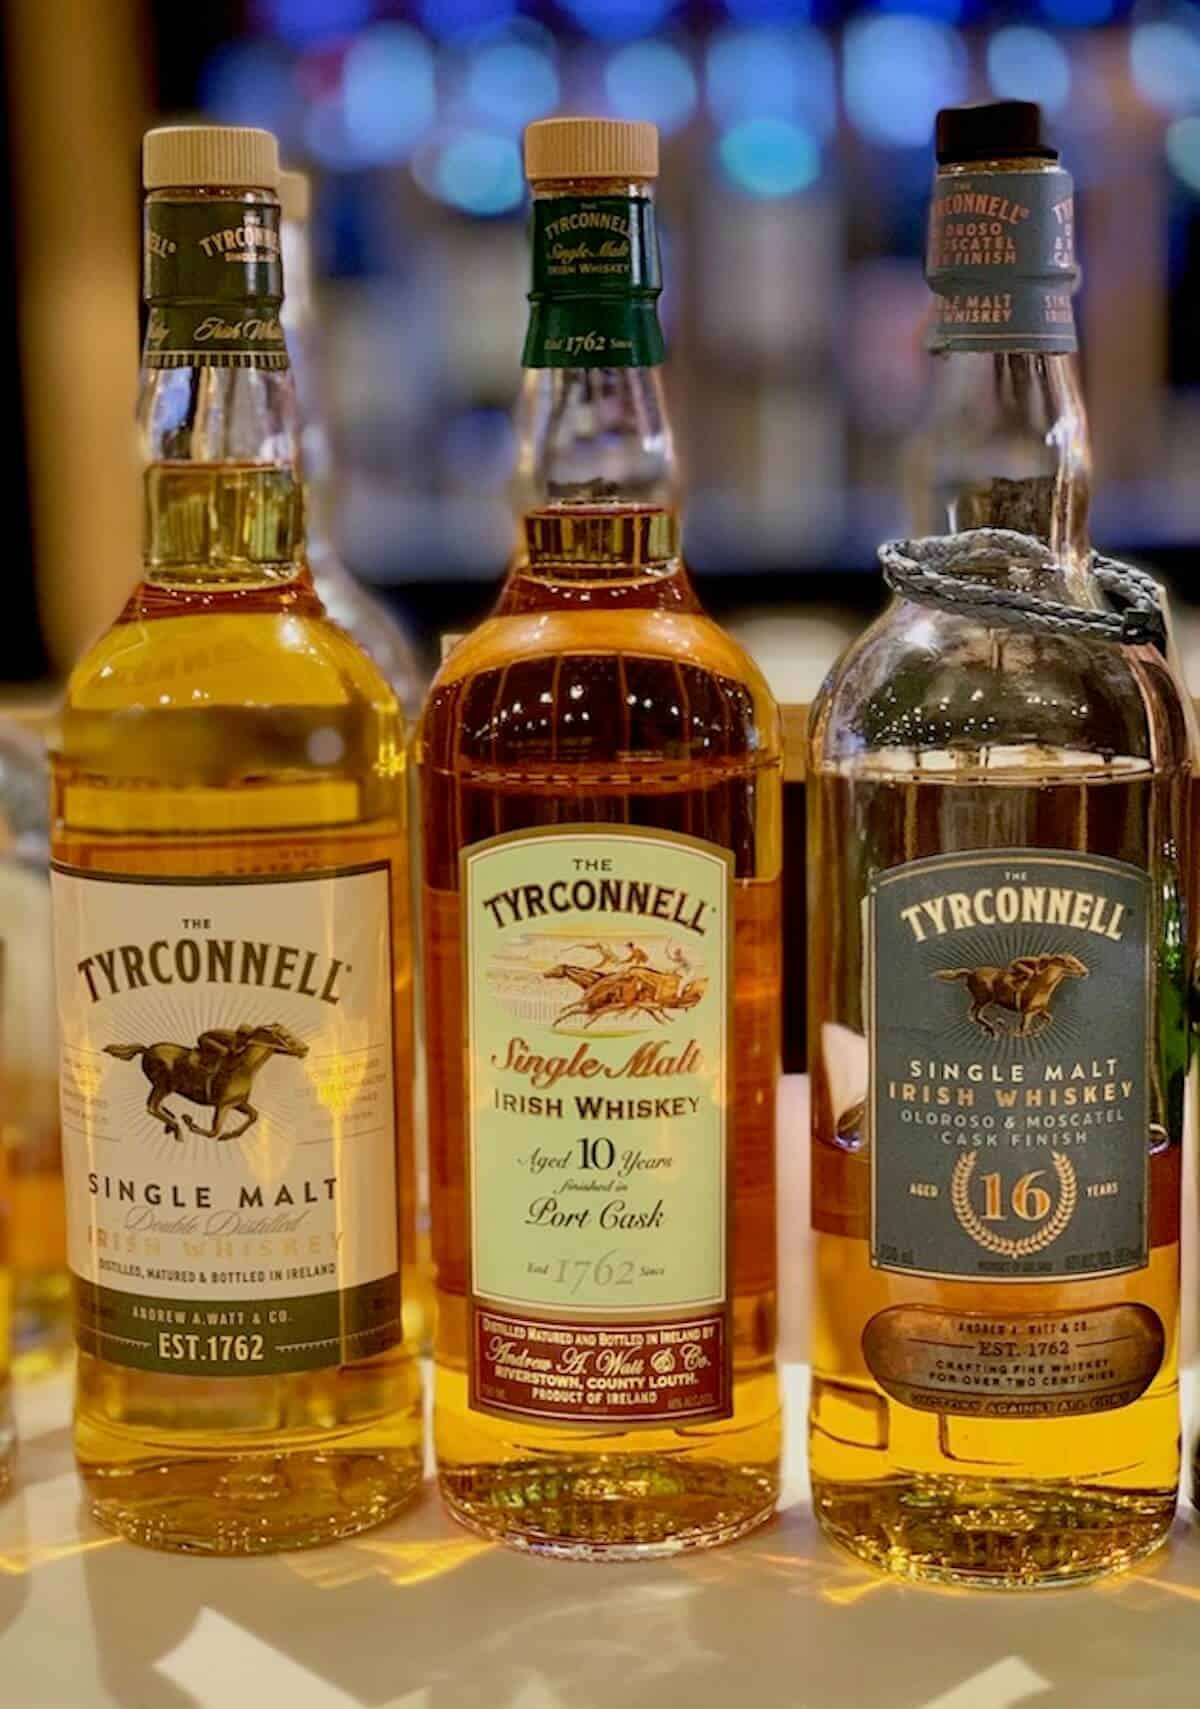 Tyrconnell lineup in bottles